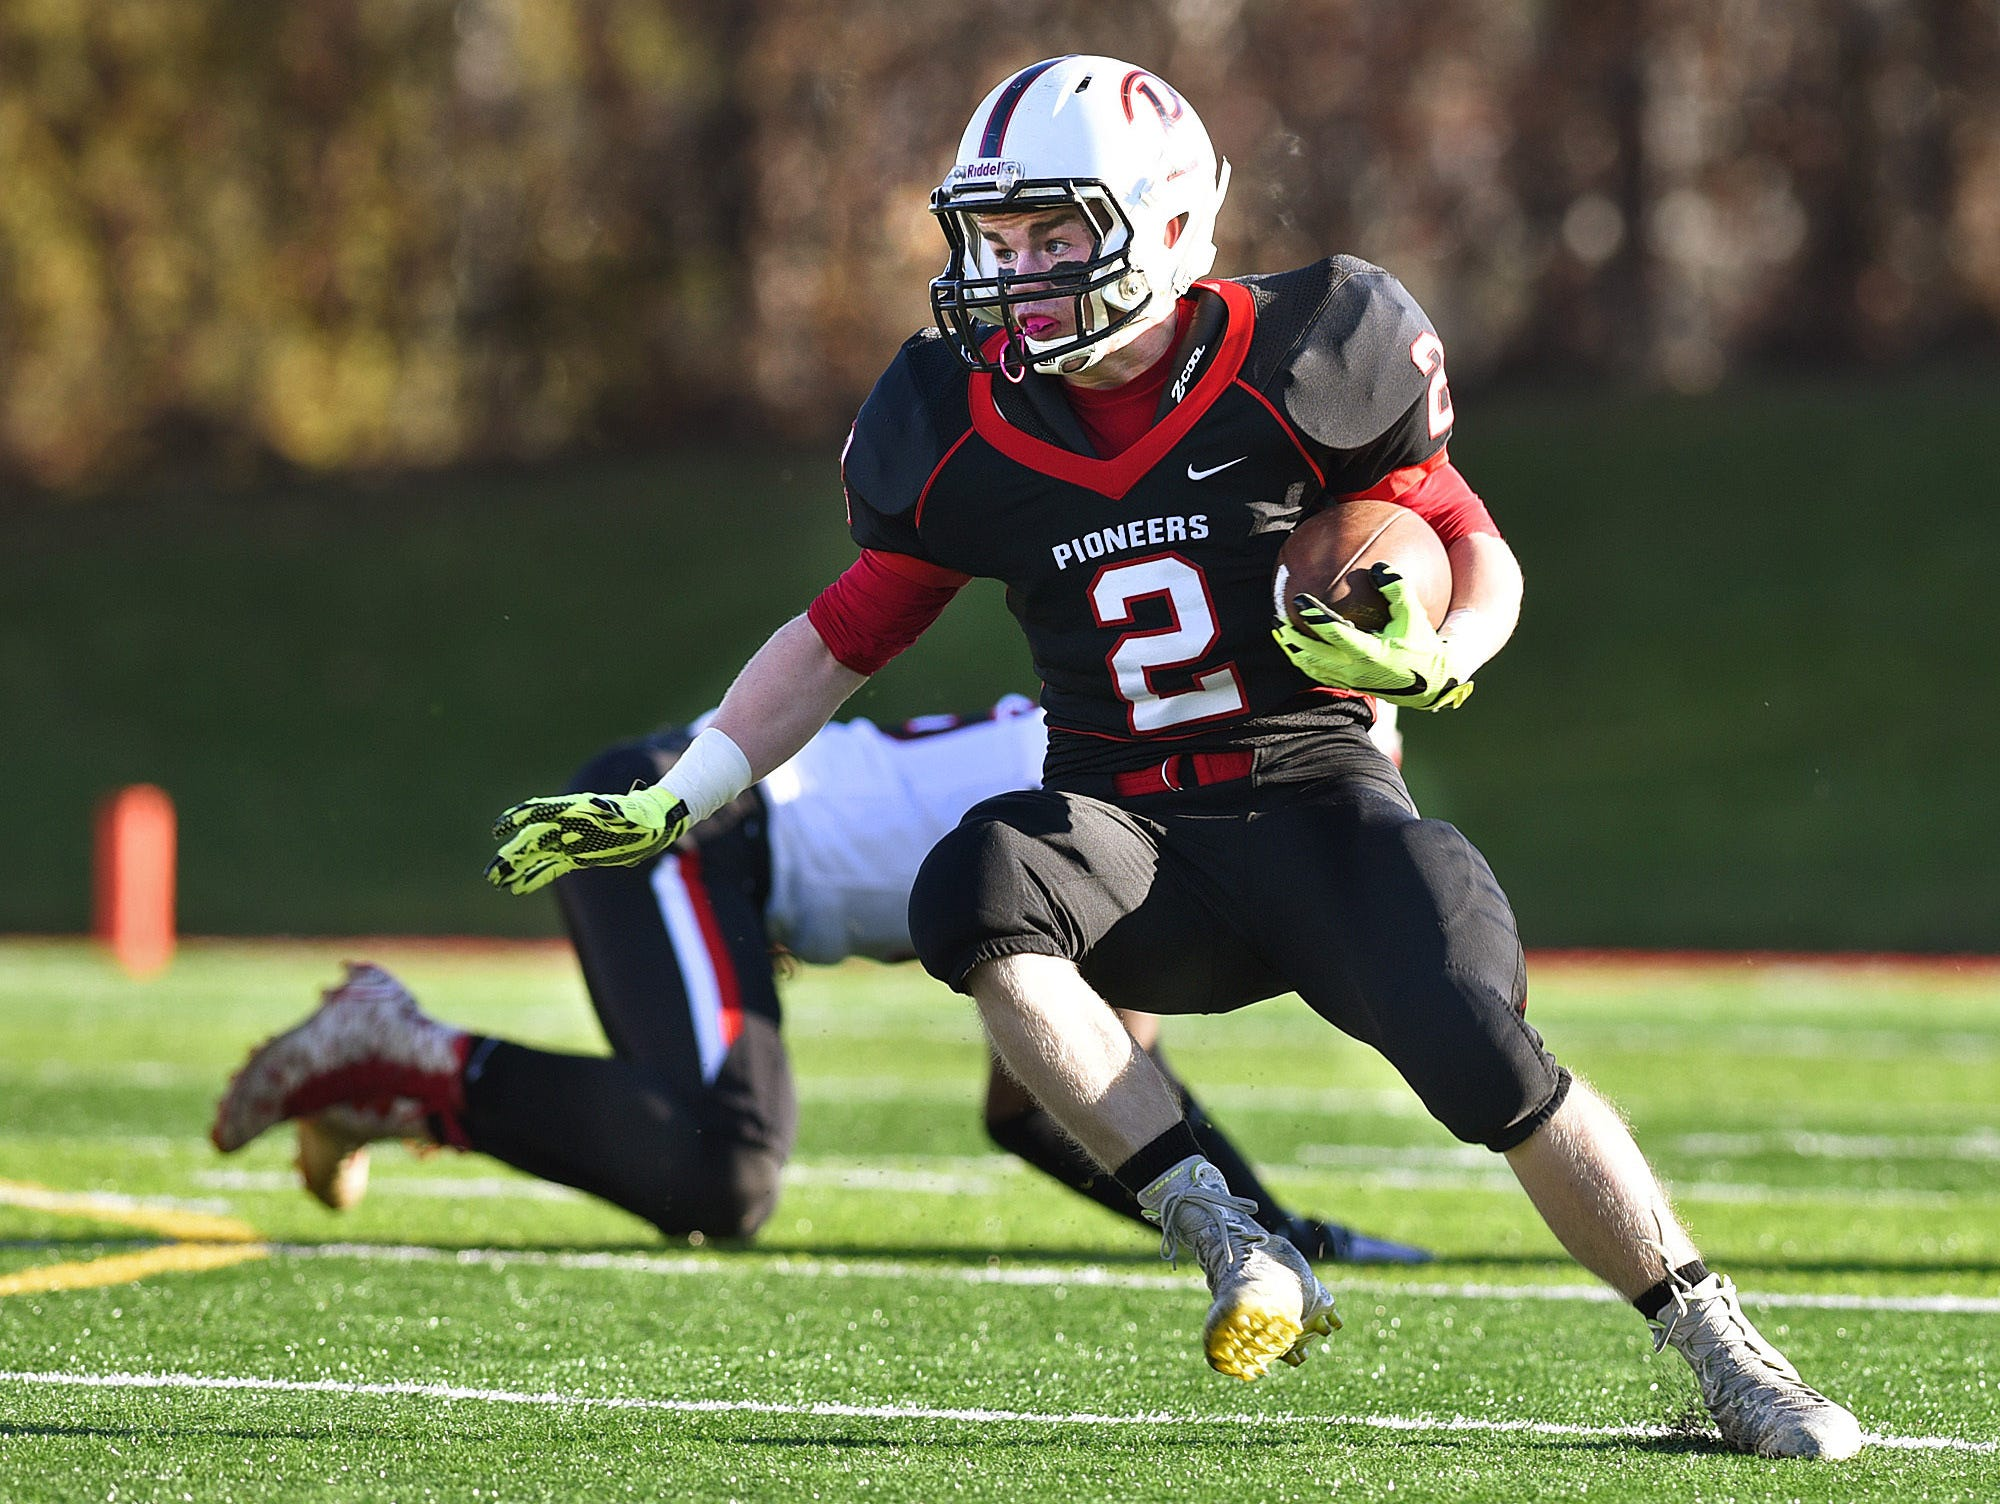 Pierz's Derick Hall breaks an Annandale tackler and looks for an open lane to run in the first half Oct. 4 at Husky Stadium. The PIoneers play Tri-City United in the Class 3A state semifinals at 7 p.m. Friday at Park Center High School in Brooklyn Park.